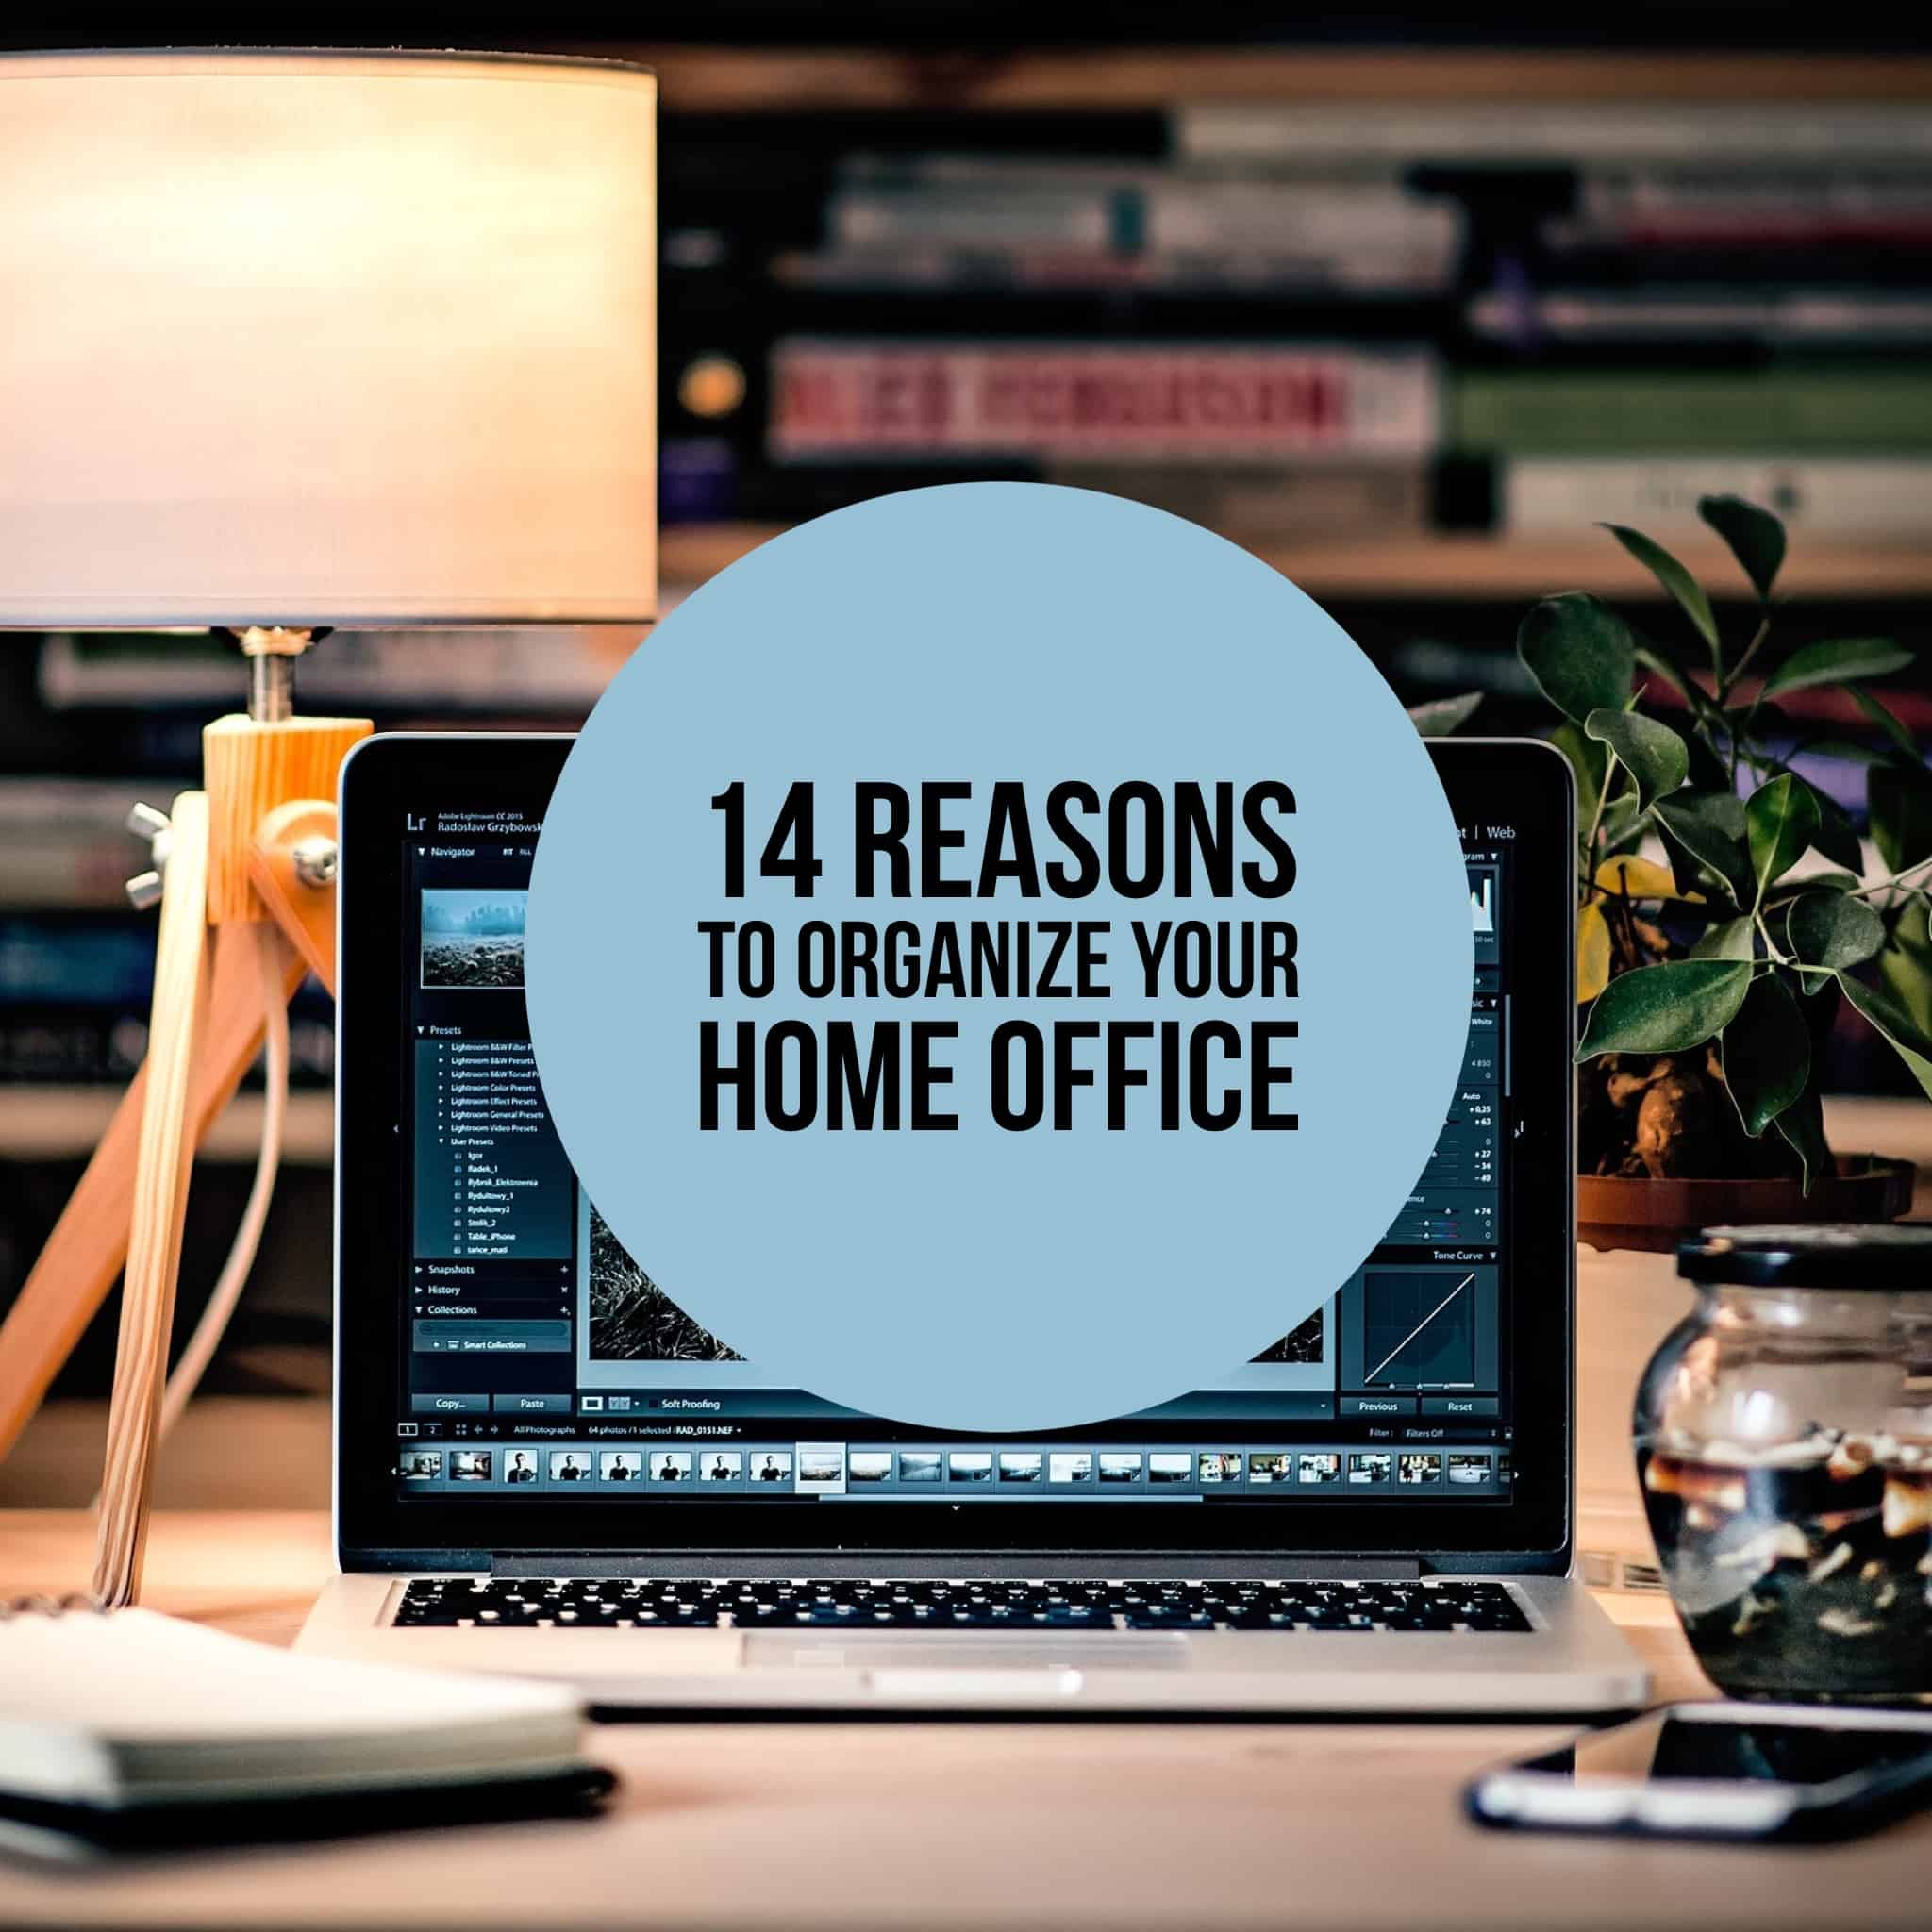 14 Reasons to Organize Your Home Office Title